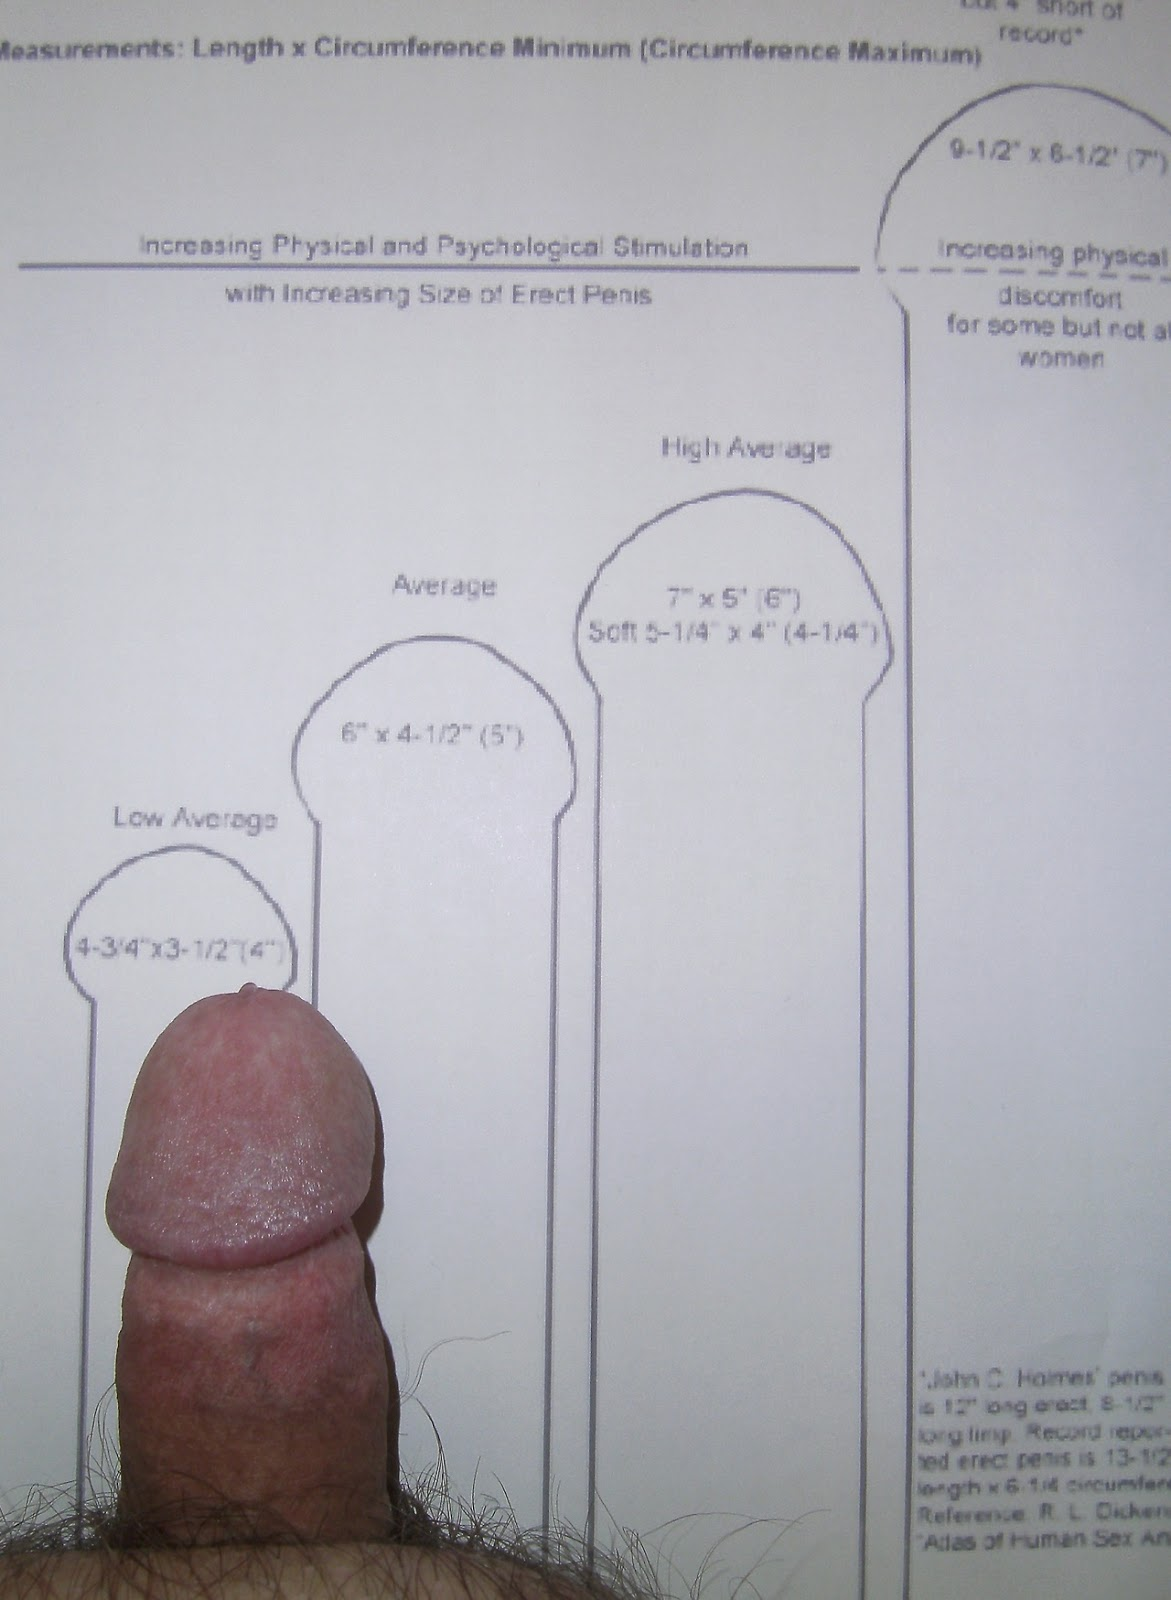 Penis average size erected by height — photo 9